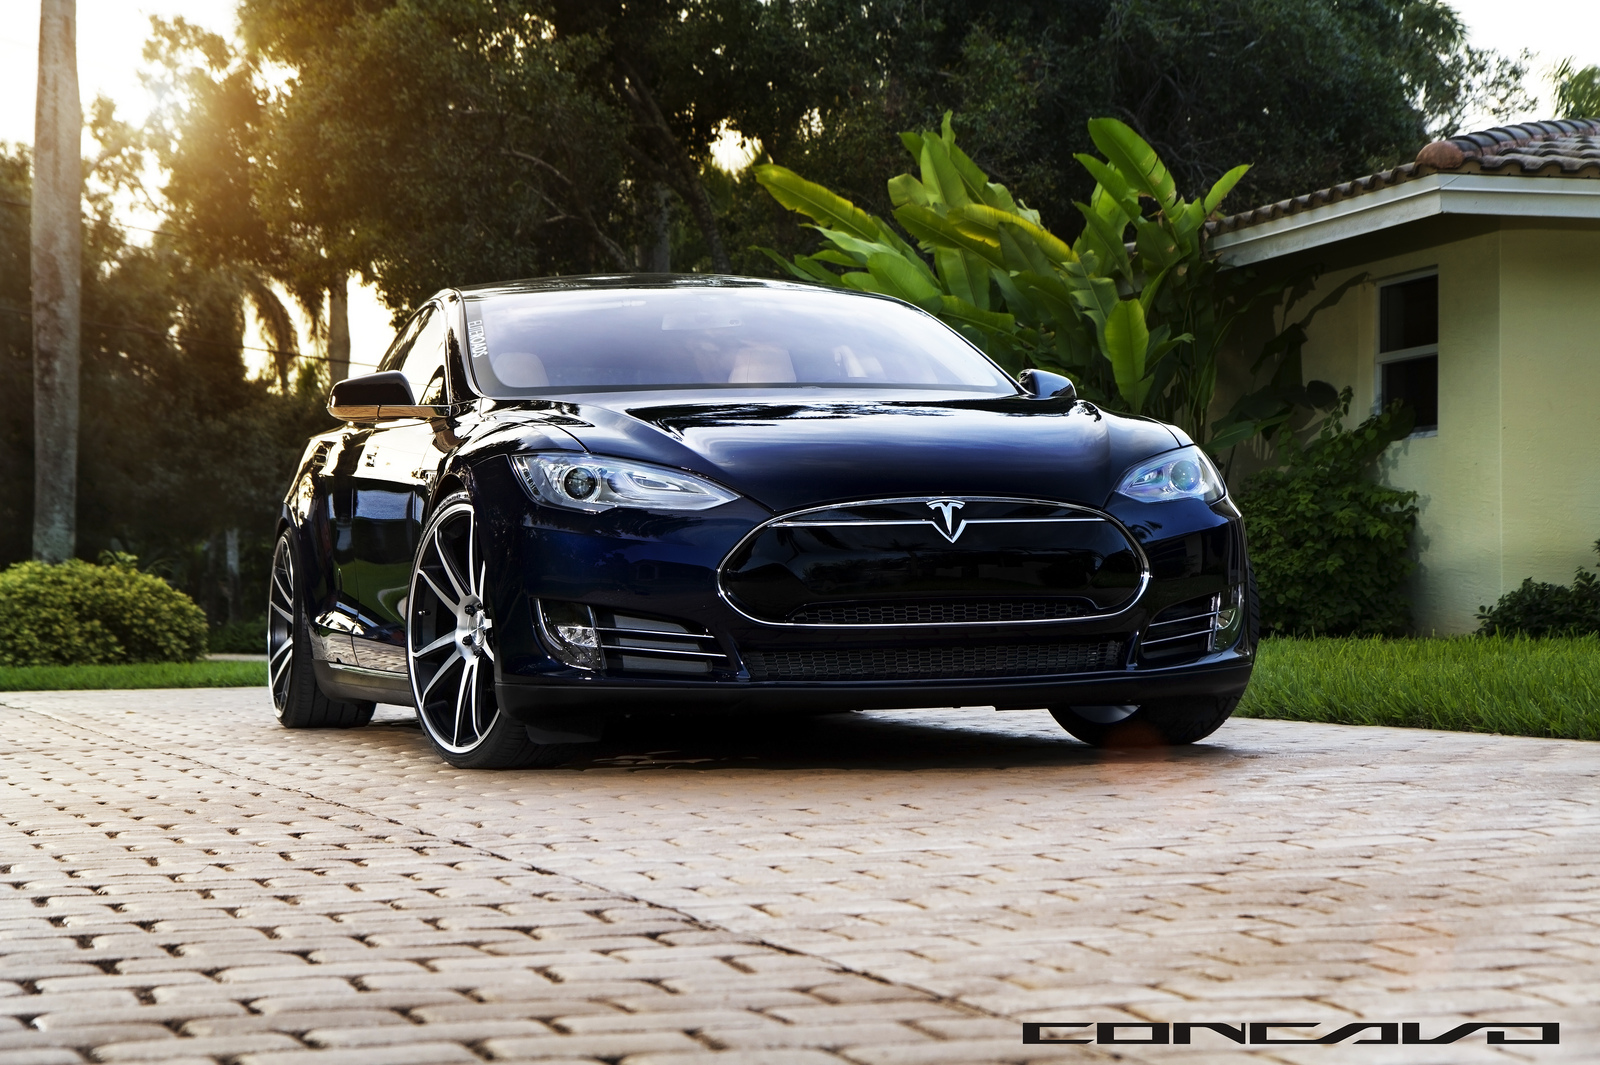 Tesla-Model-S-Concavo-22inch-Wheels-Front